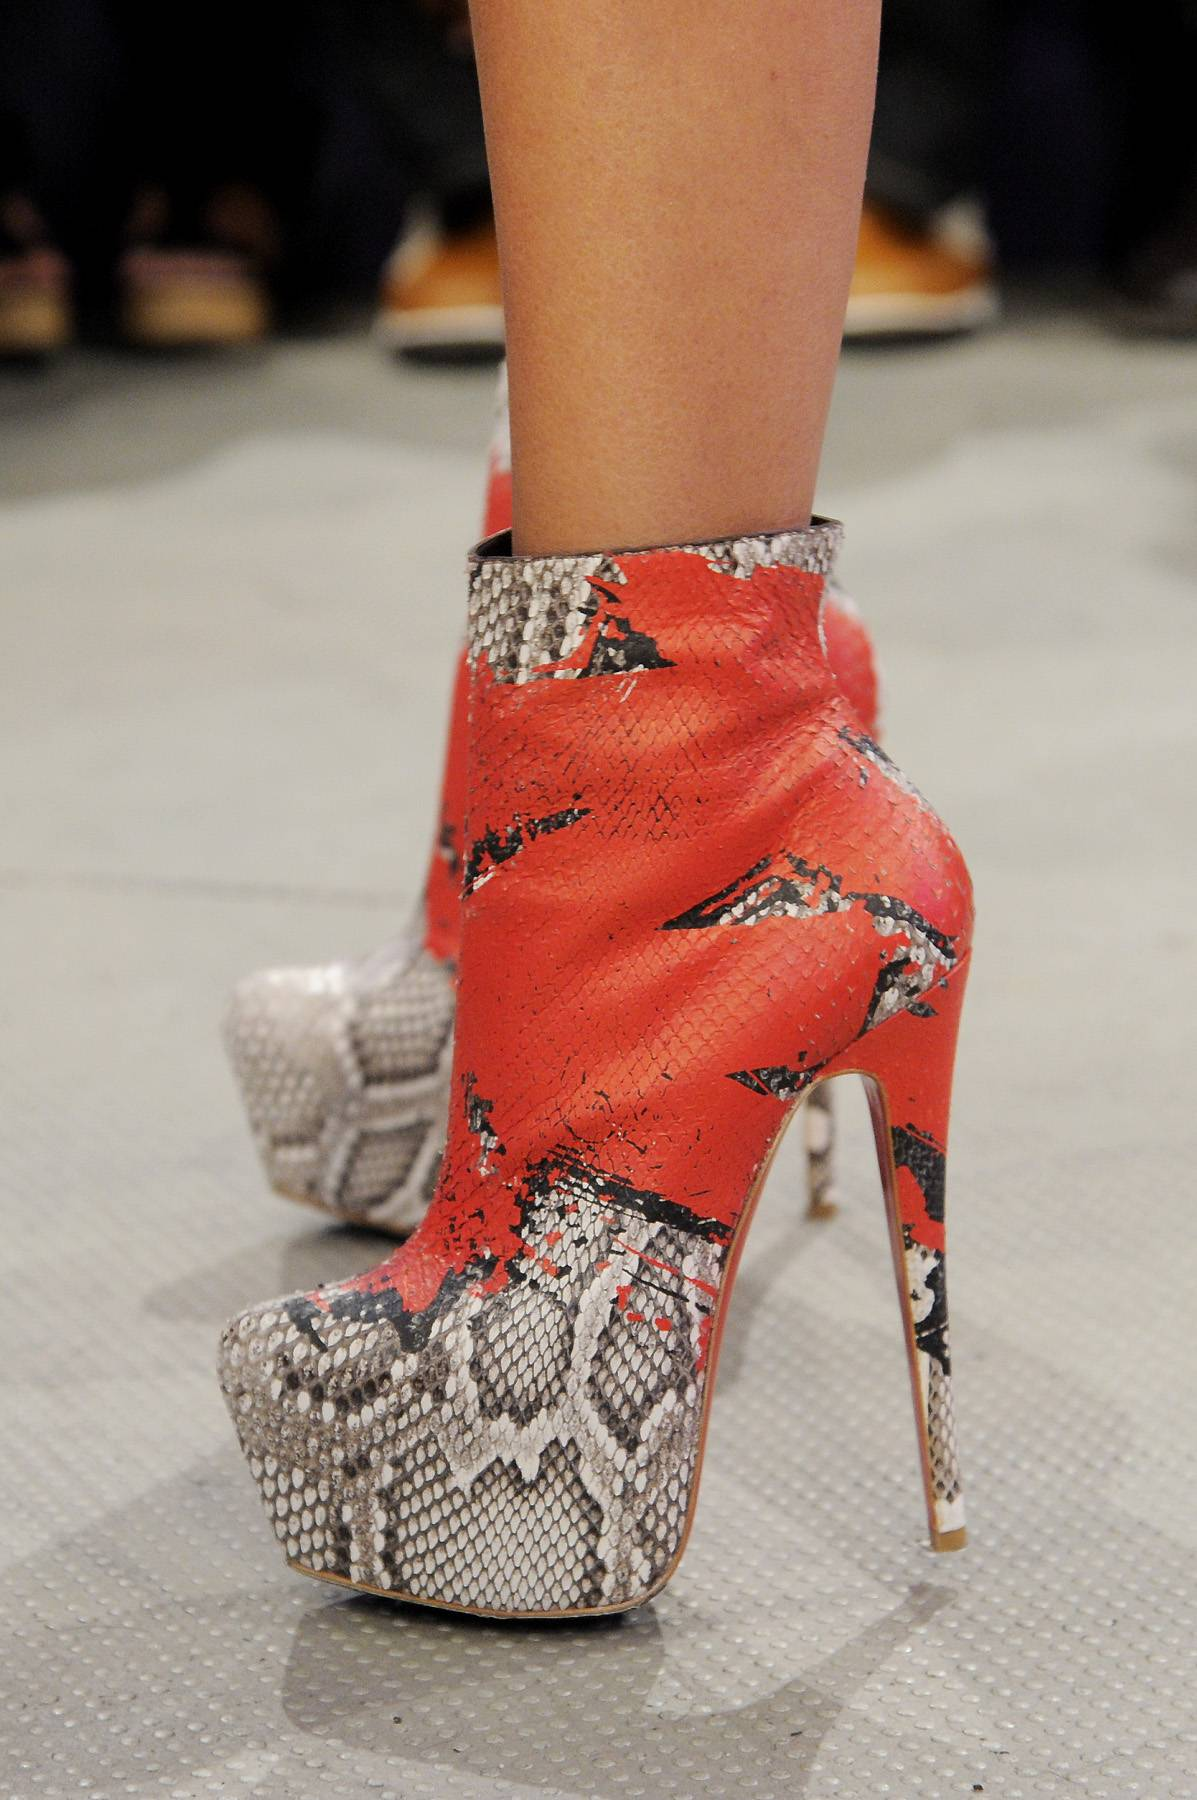 Boots Made for Walking? - Rocsi rocks some power-heels on 106 & Park, April 6, 2012.(photo: John Ricard / BET)